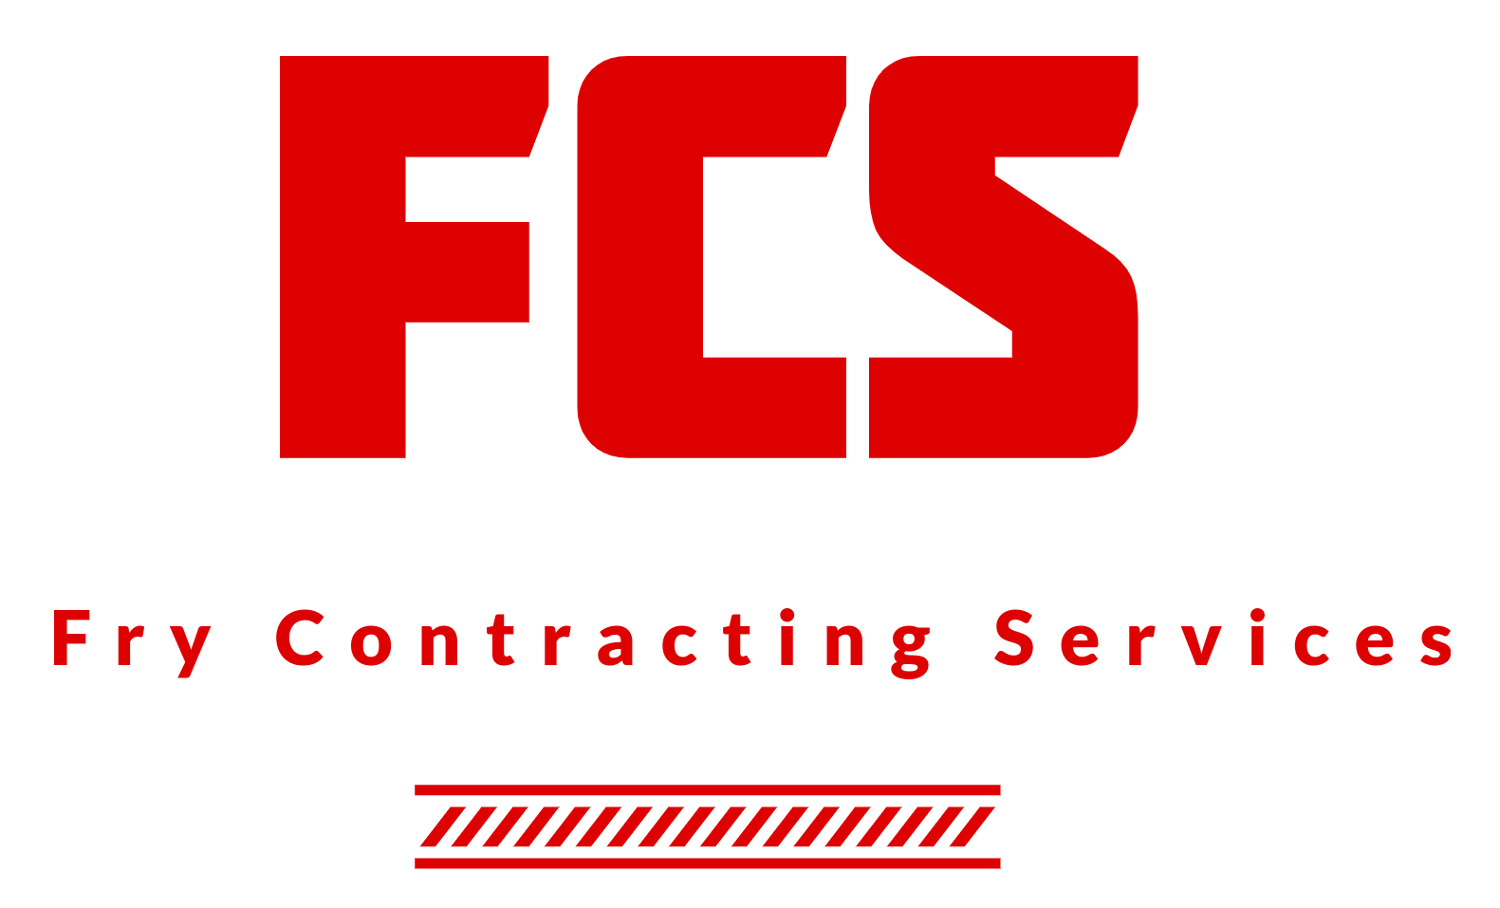 Fry Contracting Services primary image